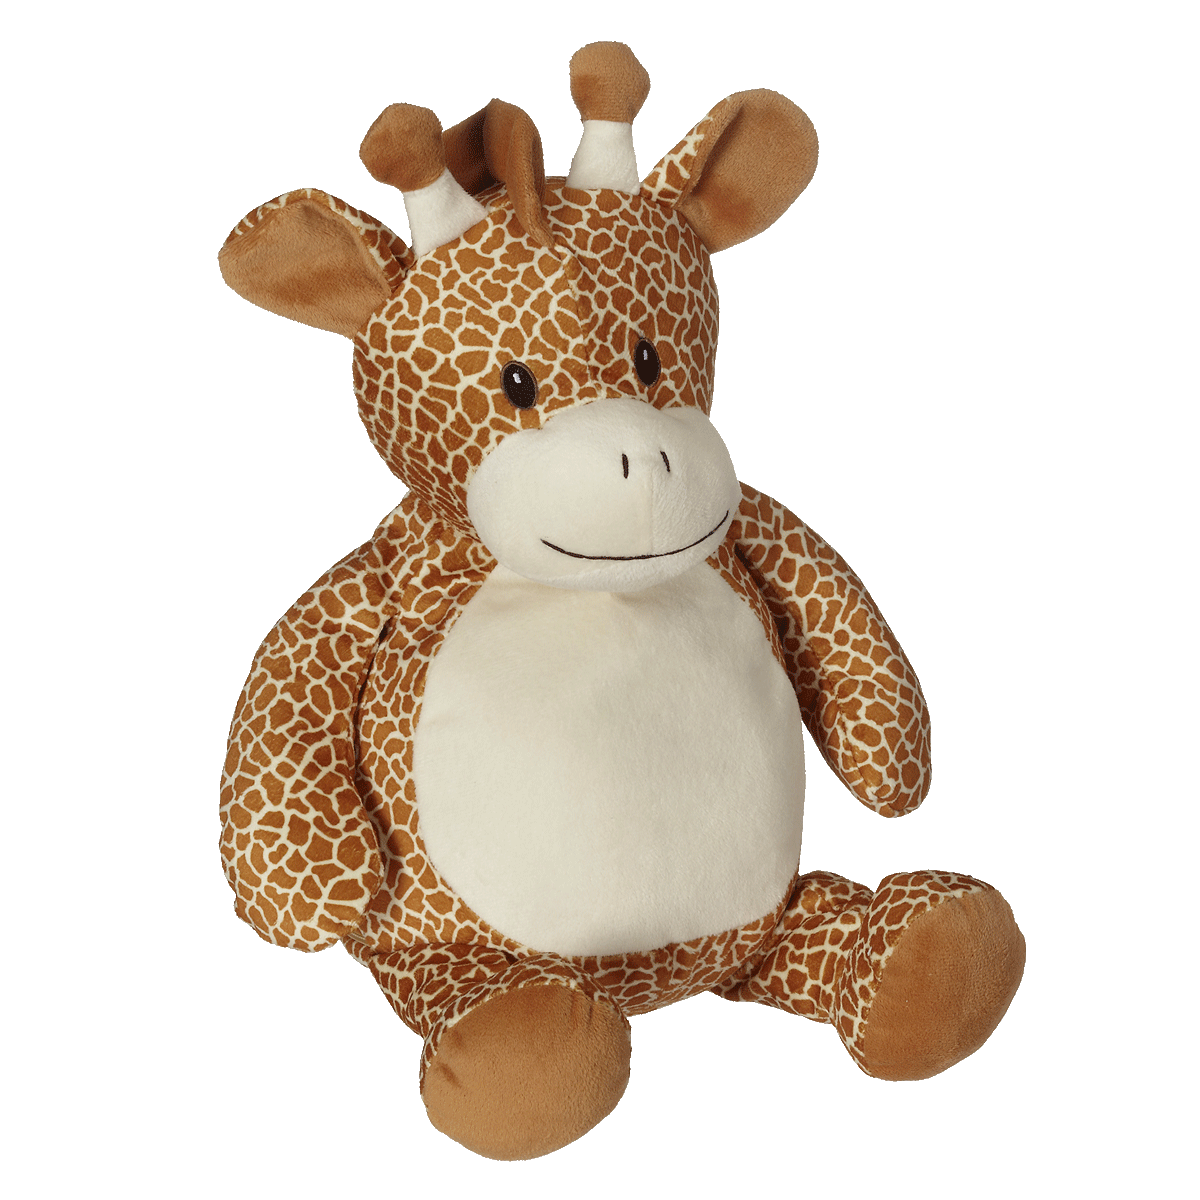 embroider buddy® – Gerry Giraffe Buddy